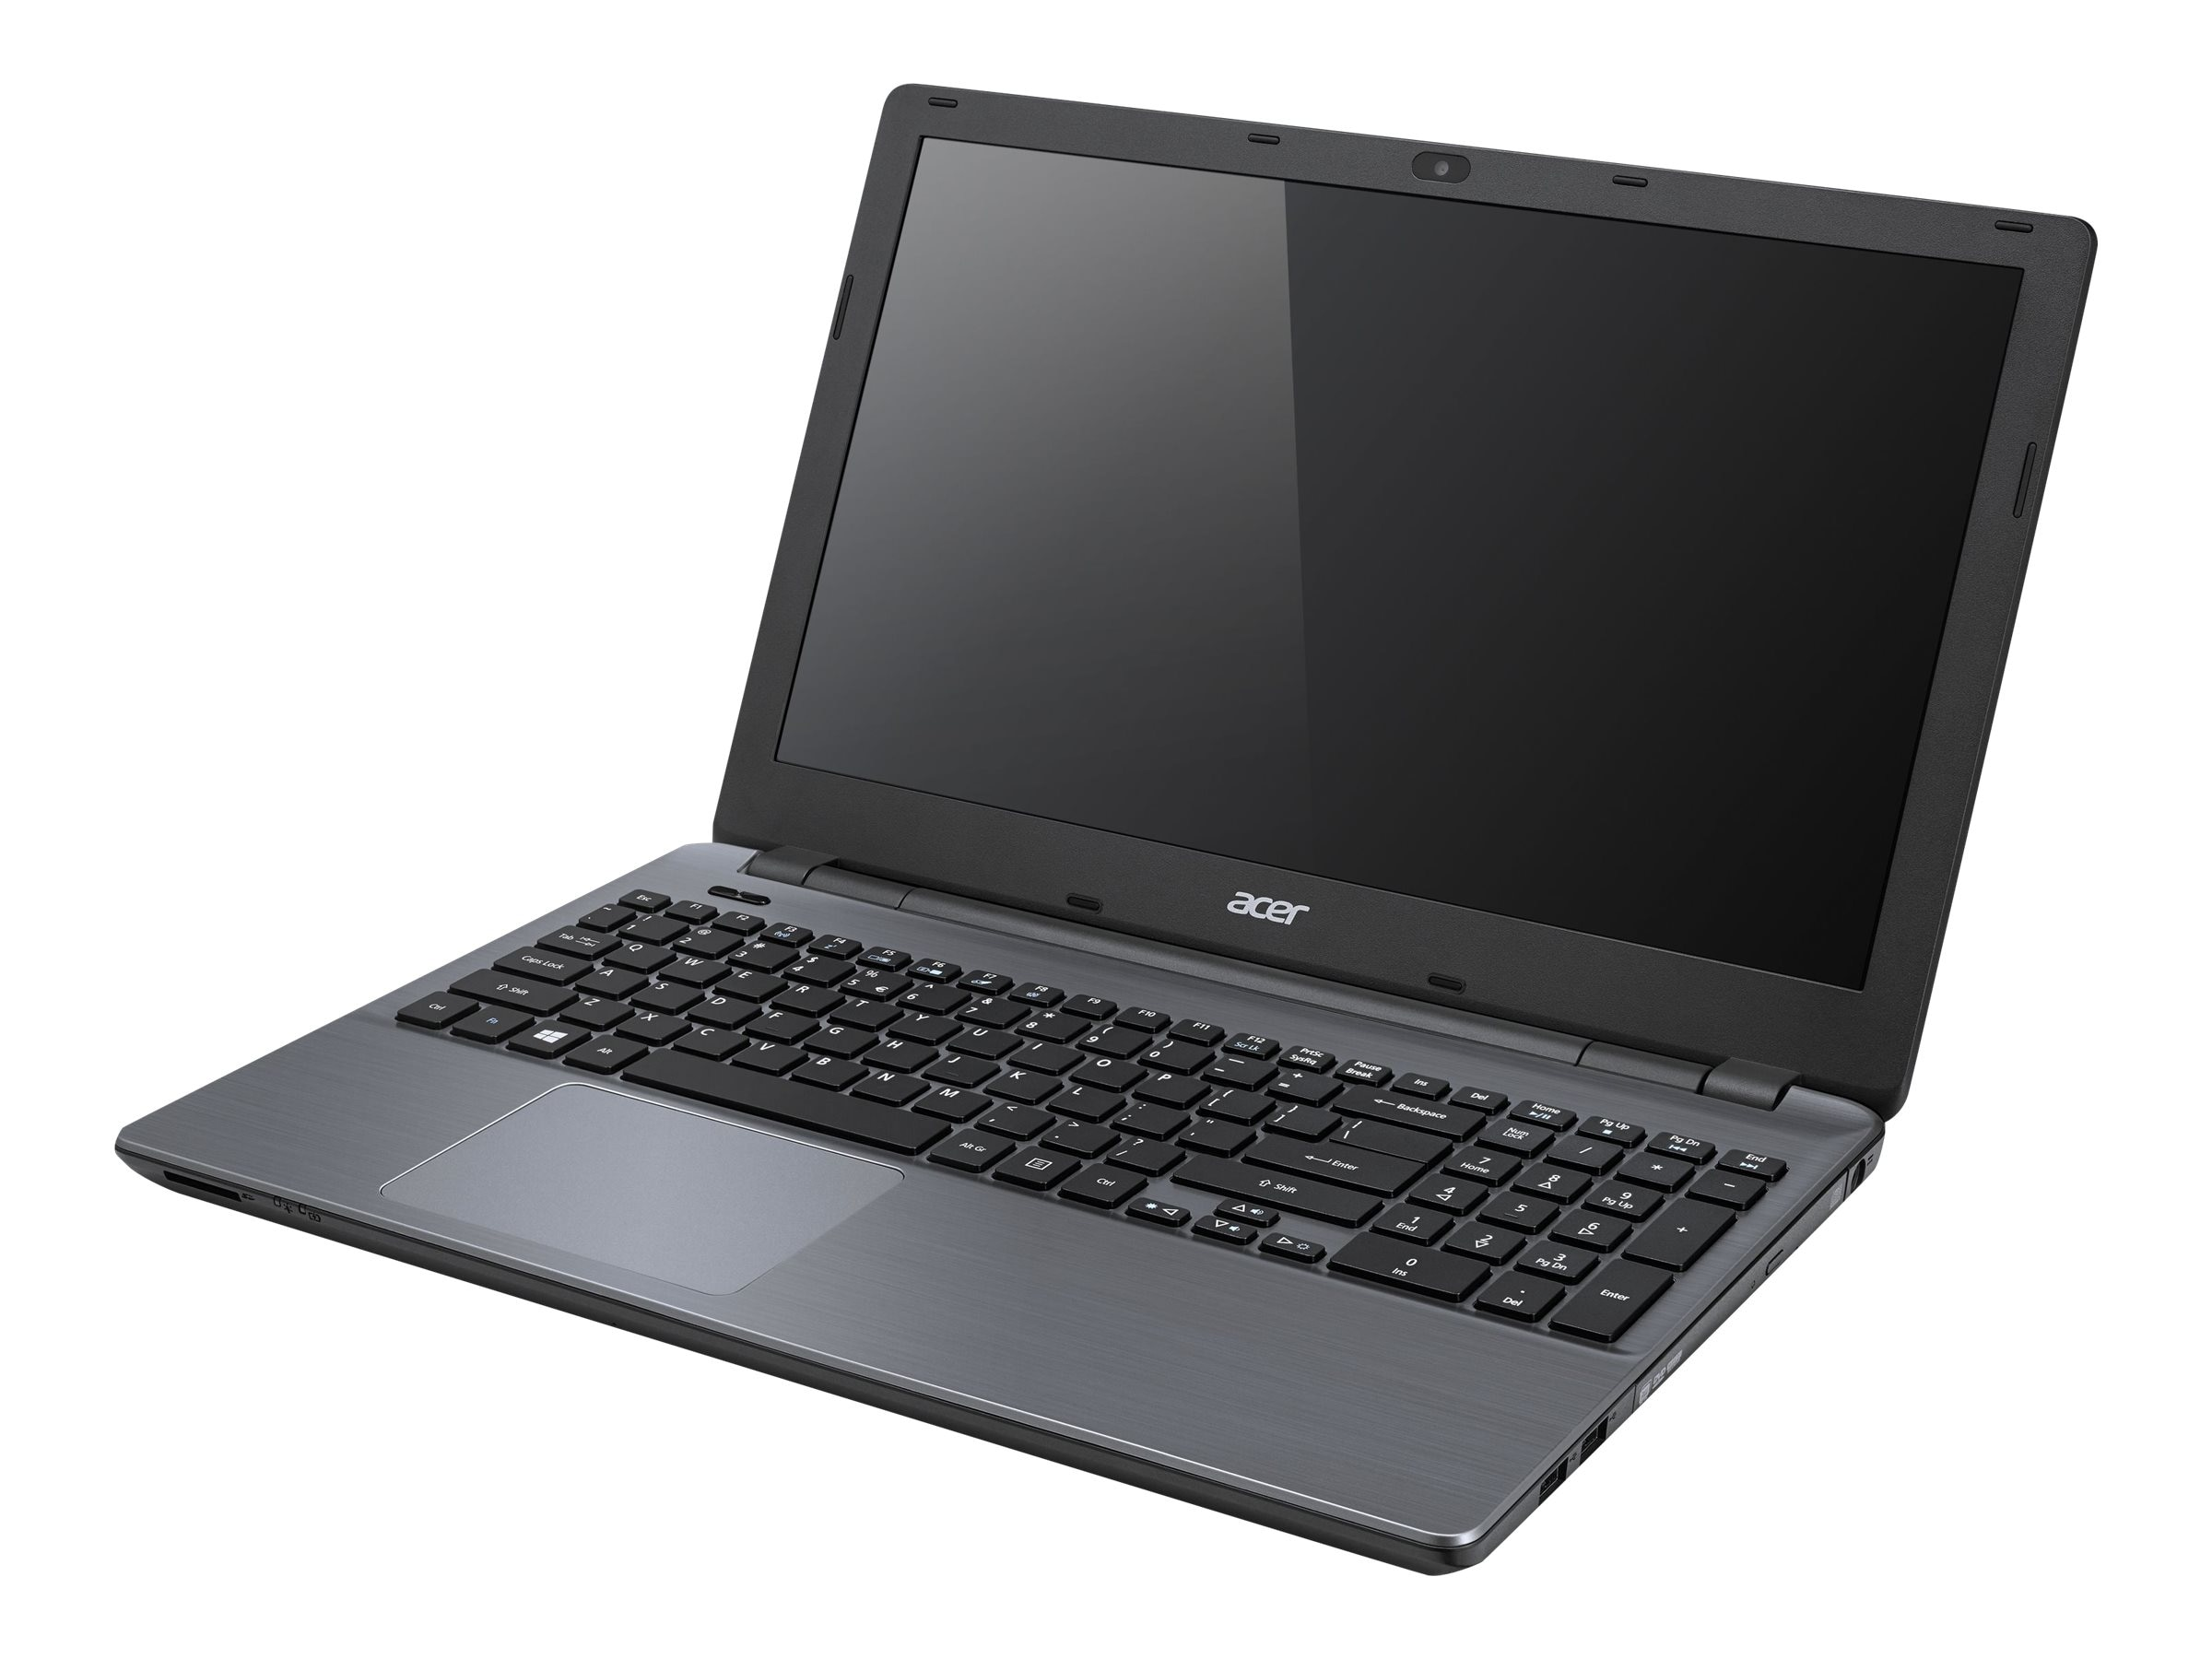 Acer Aspire E5-531-P4SQ : 1.4GHz Pentium 15.6in display, NX.MLVAA.002, 17733737, Notebooks